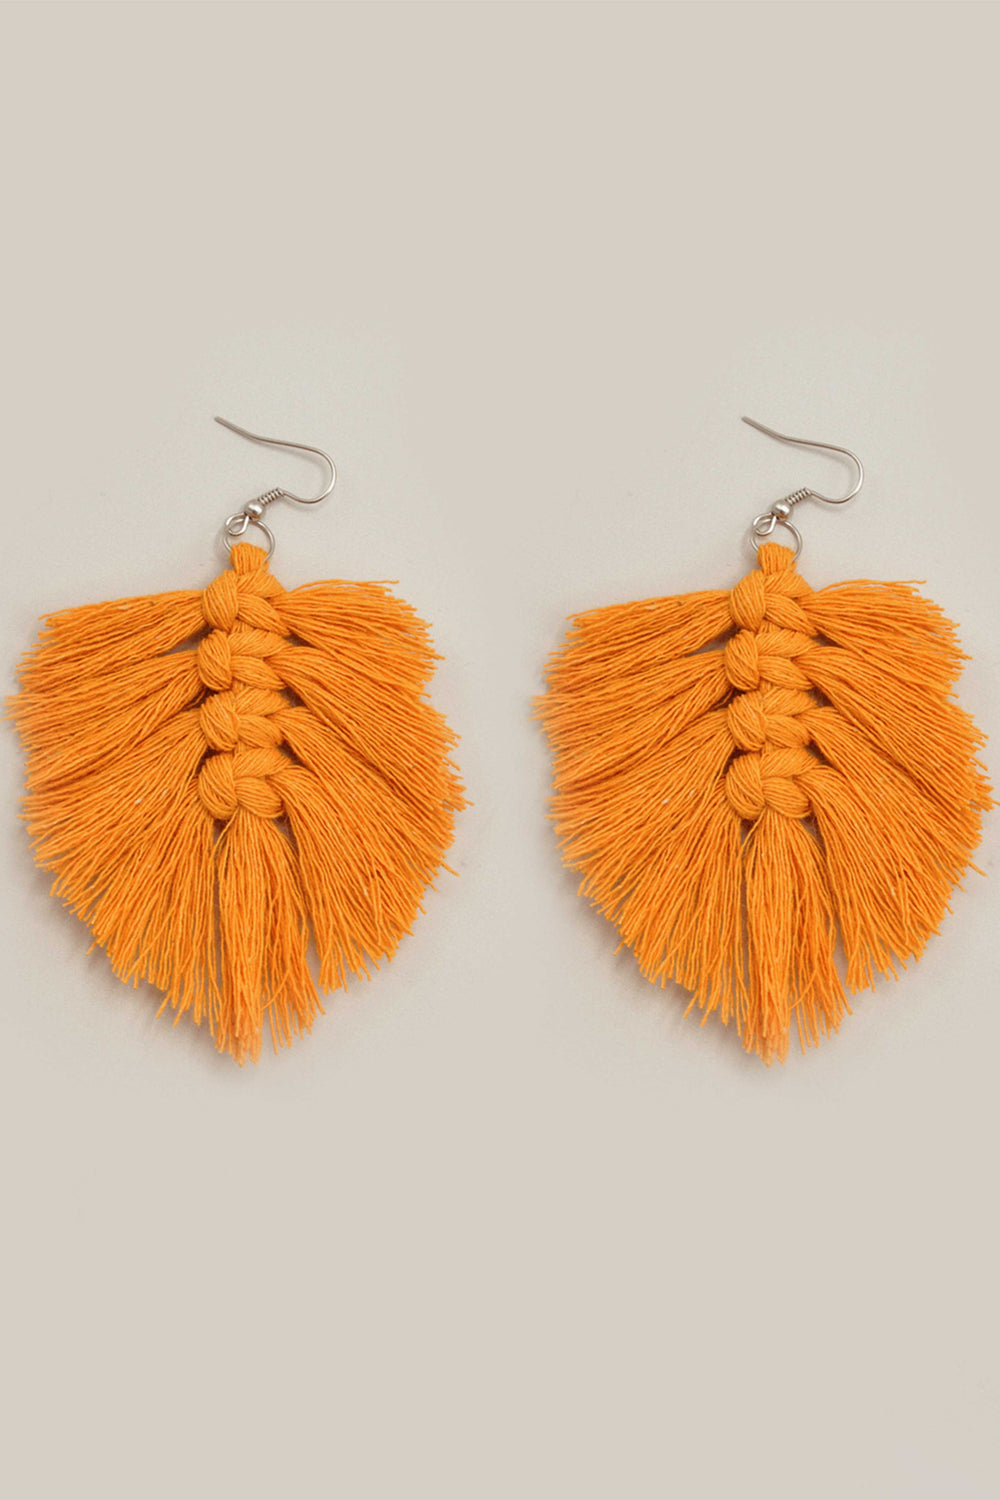 HONOLULU EARRINGS | Women's Online Shopping | CHICLEFRIQUE